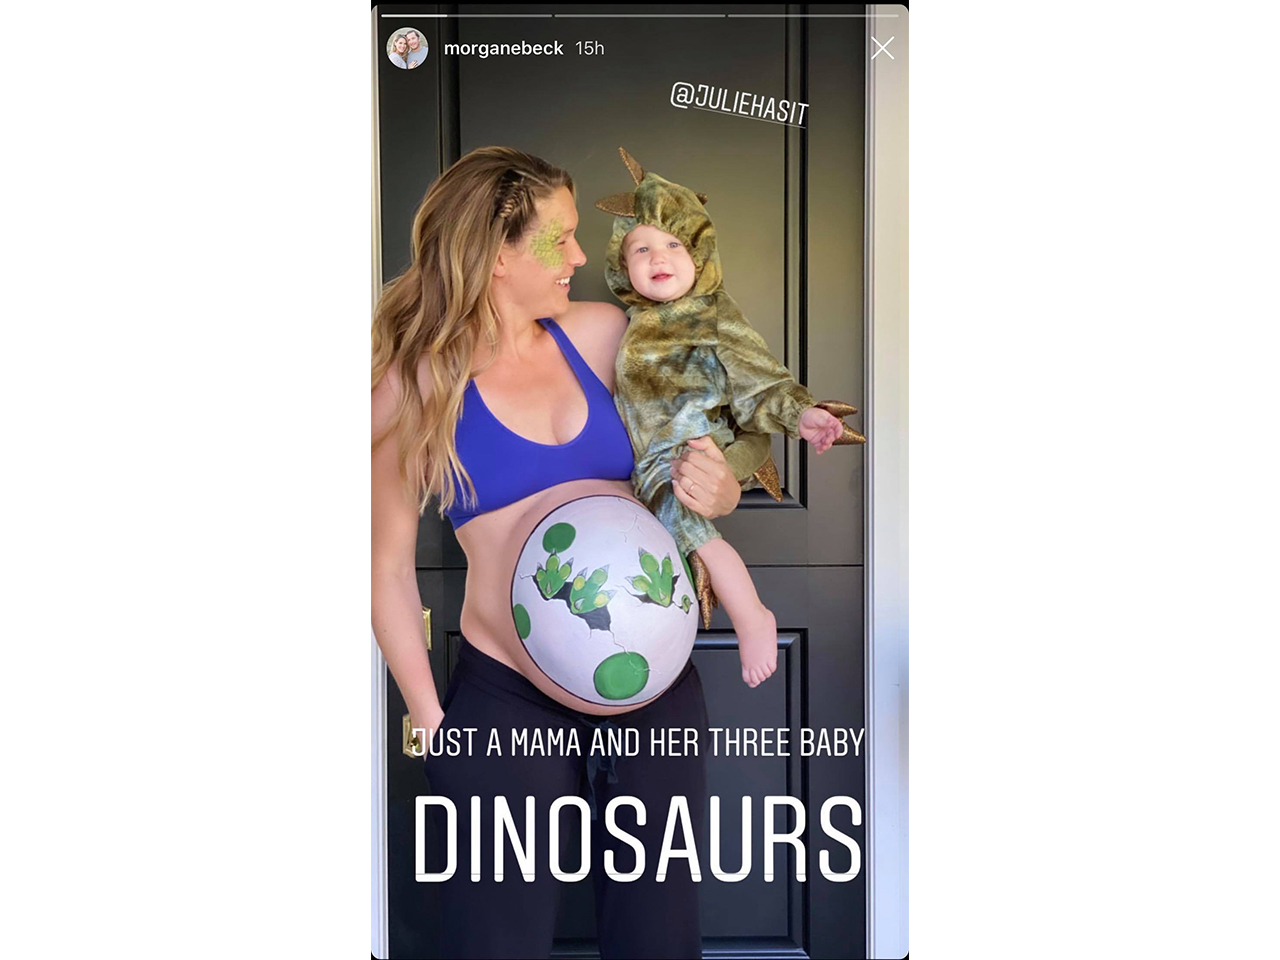 Morgan dressed as a dinosaur egg holding a baby dressed as a dinoasaur